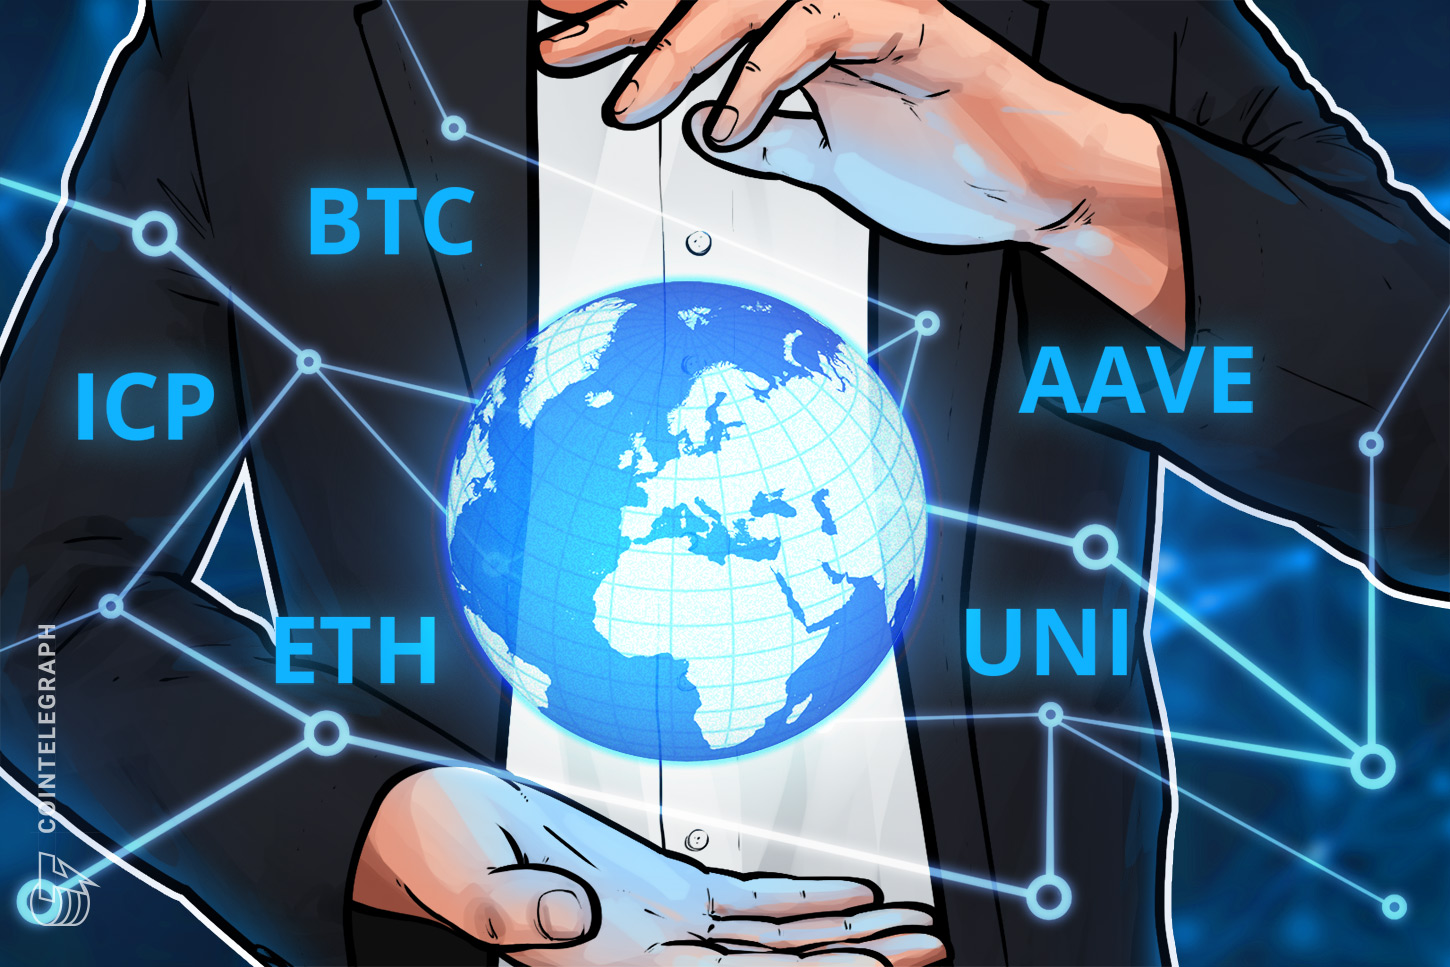 Top 5 cryptocurrencies to watch this week: BTC, ETH, UNI, ICP, AAVE